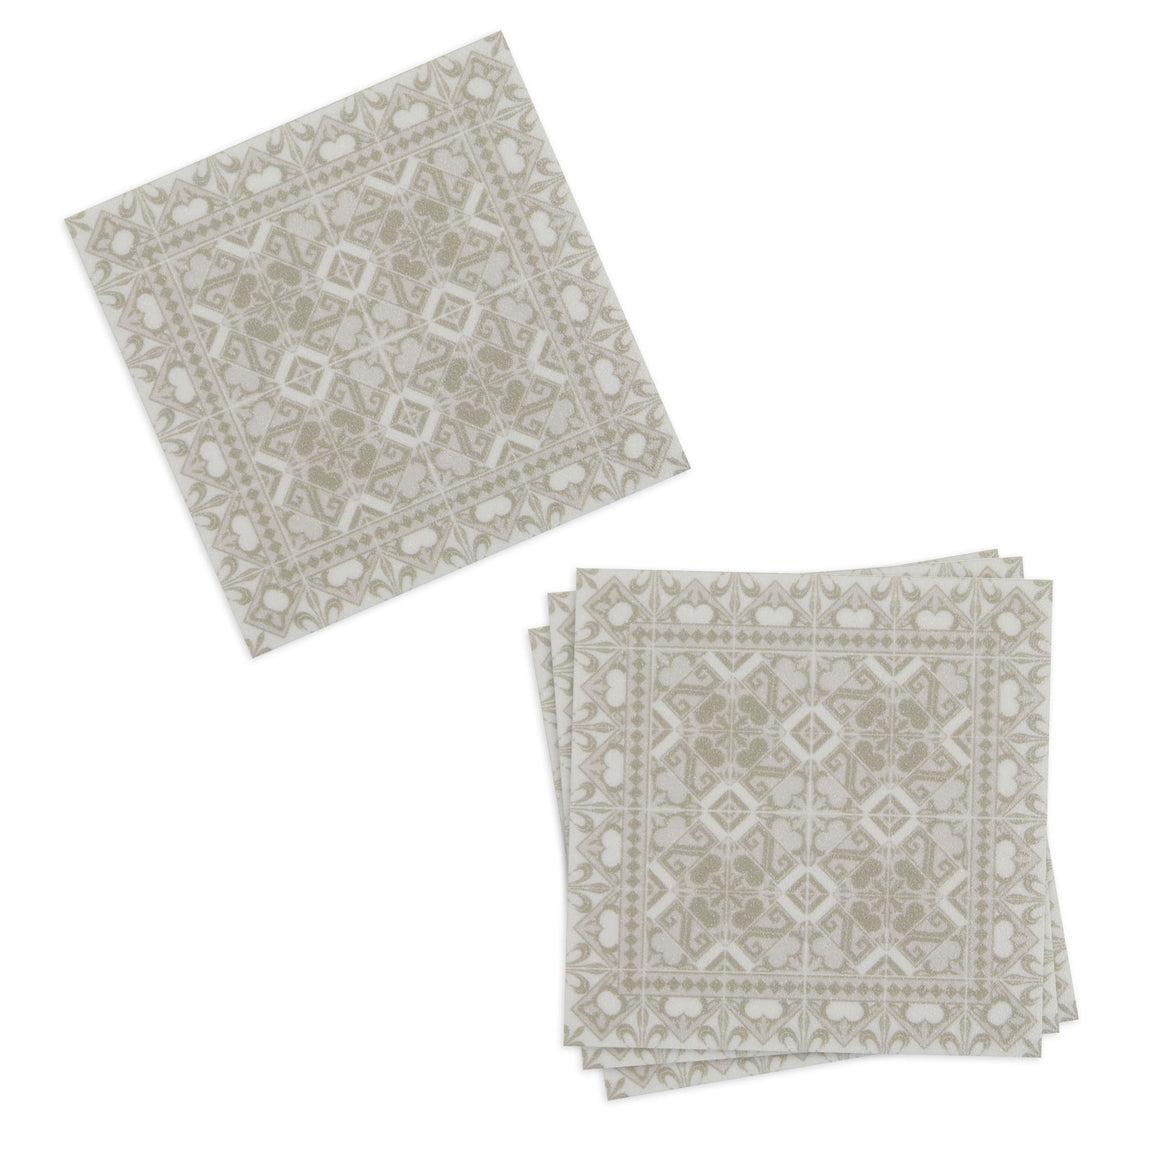 Vaucluse Coaster Set of 4